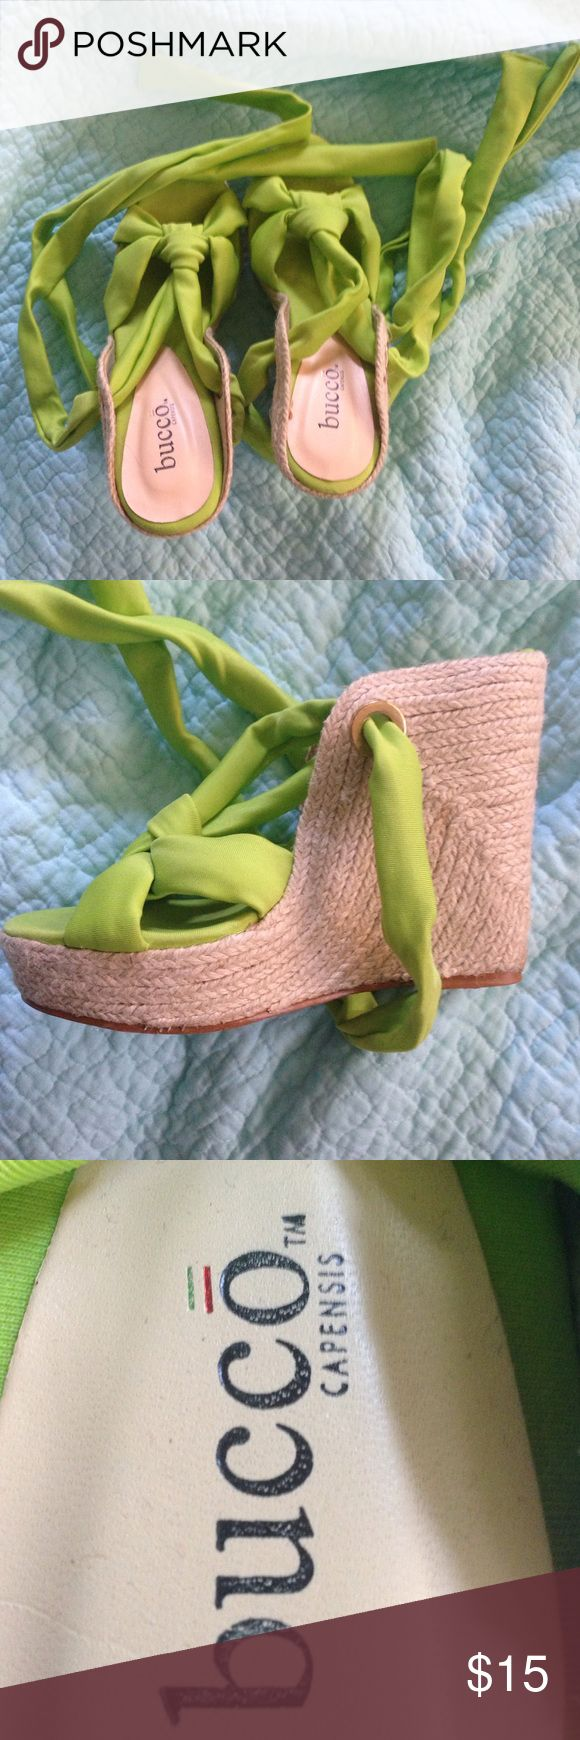 Bucco Capensis Lime Green Wedges Lime Green strappy wedges that tie up the ankle. Only worn once or twice. Goes great with a summery outfit! Offers are more than welcome! bucco capensis Shoes Wedges